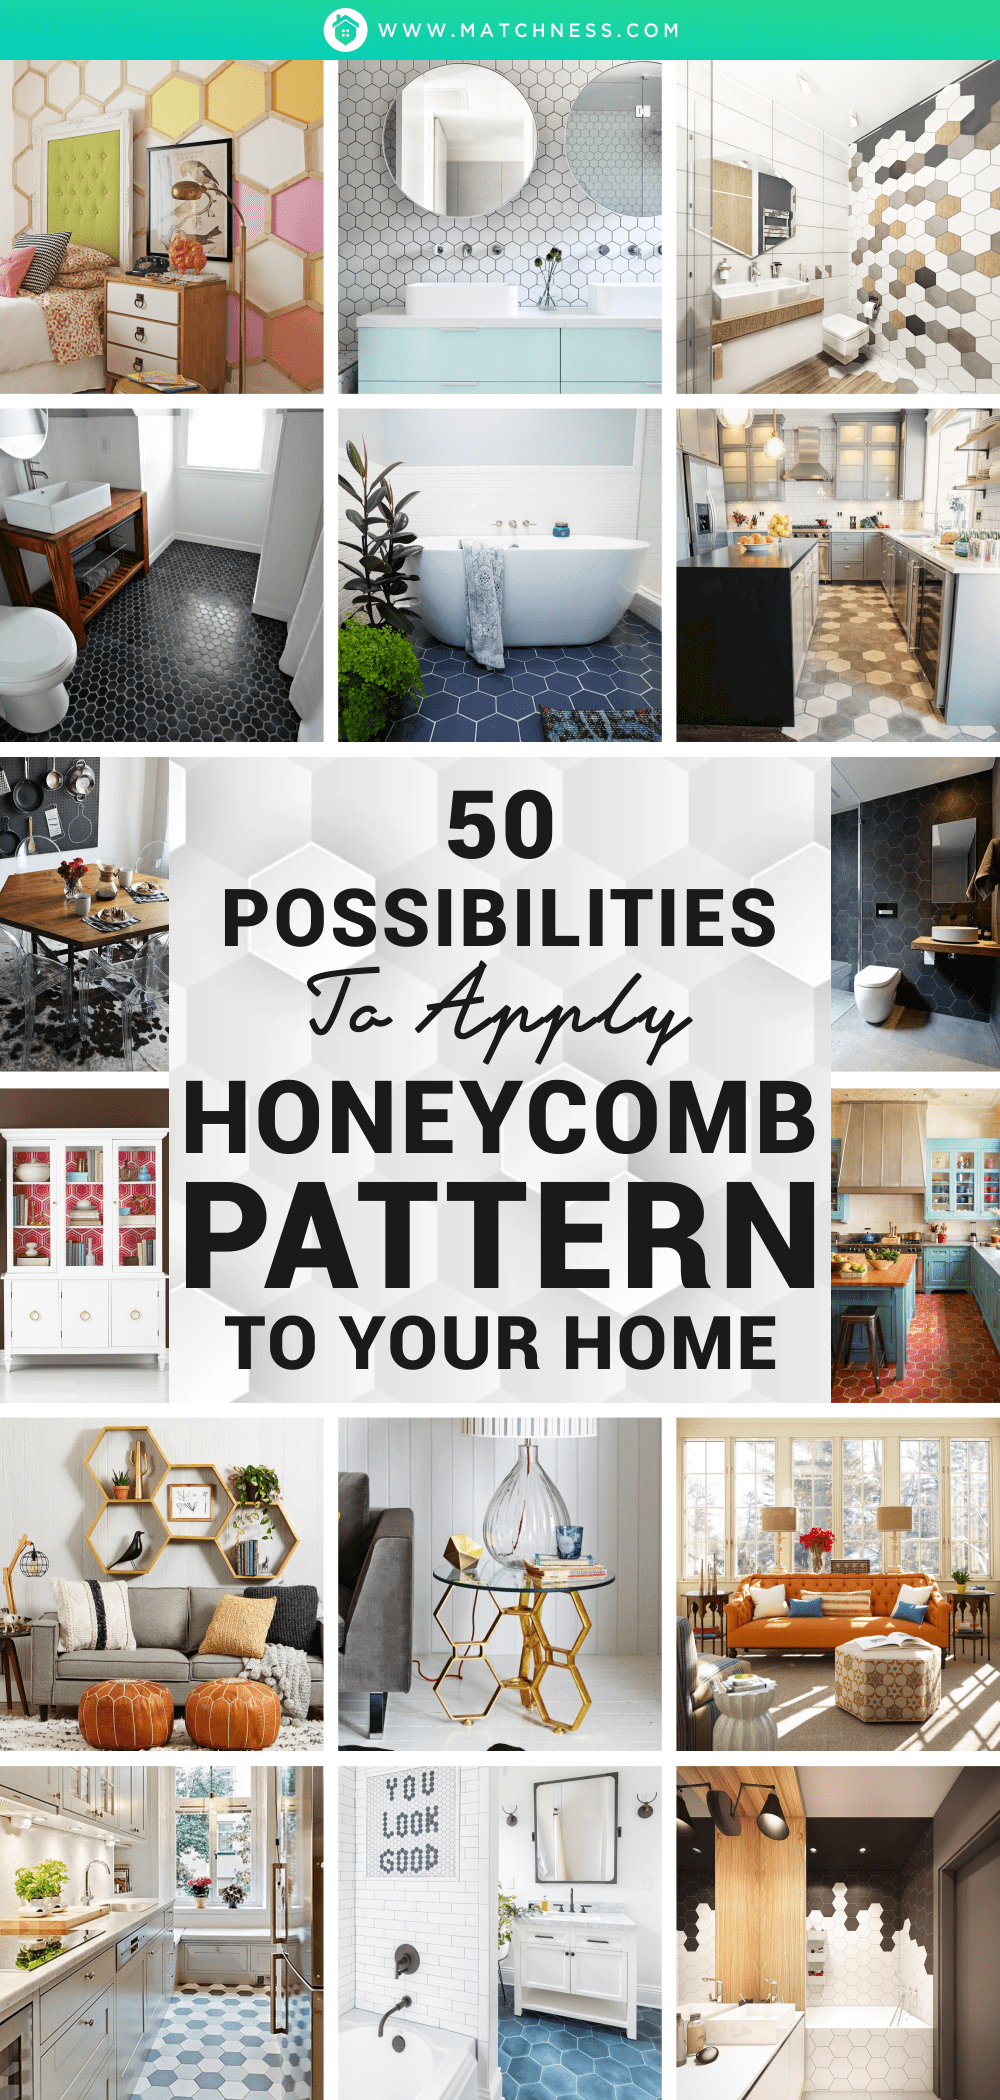 50-possibilities-to-apply-honeycomb-pattern-to-your-home1